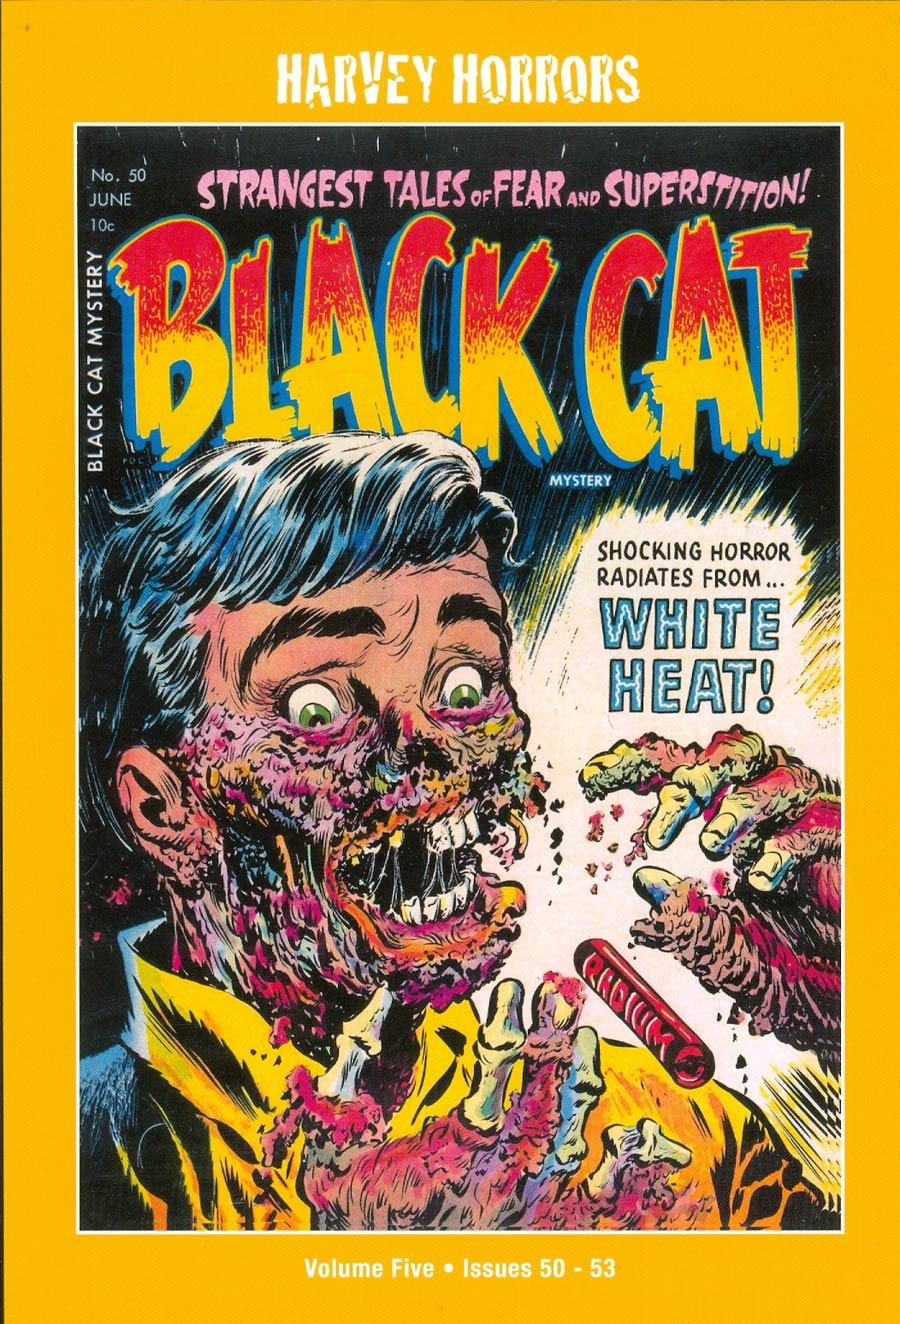 Harvey Horrors Collected Works Black Cat Mystery Softie Vol 5 TP